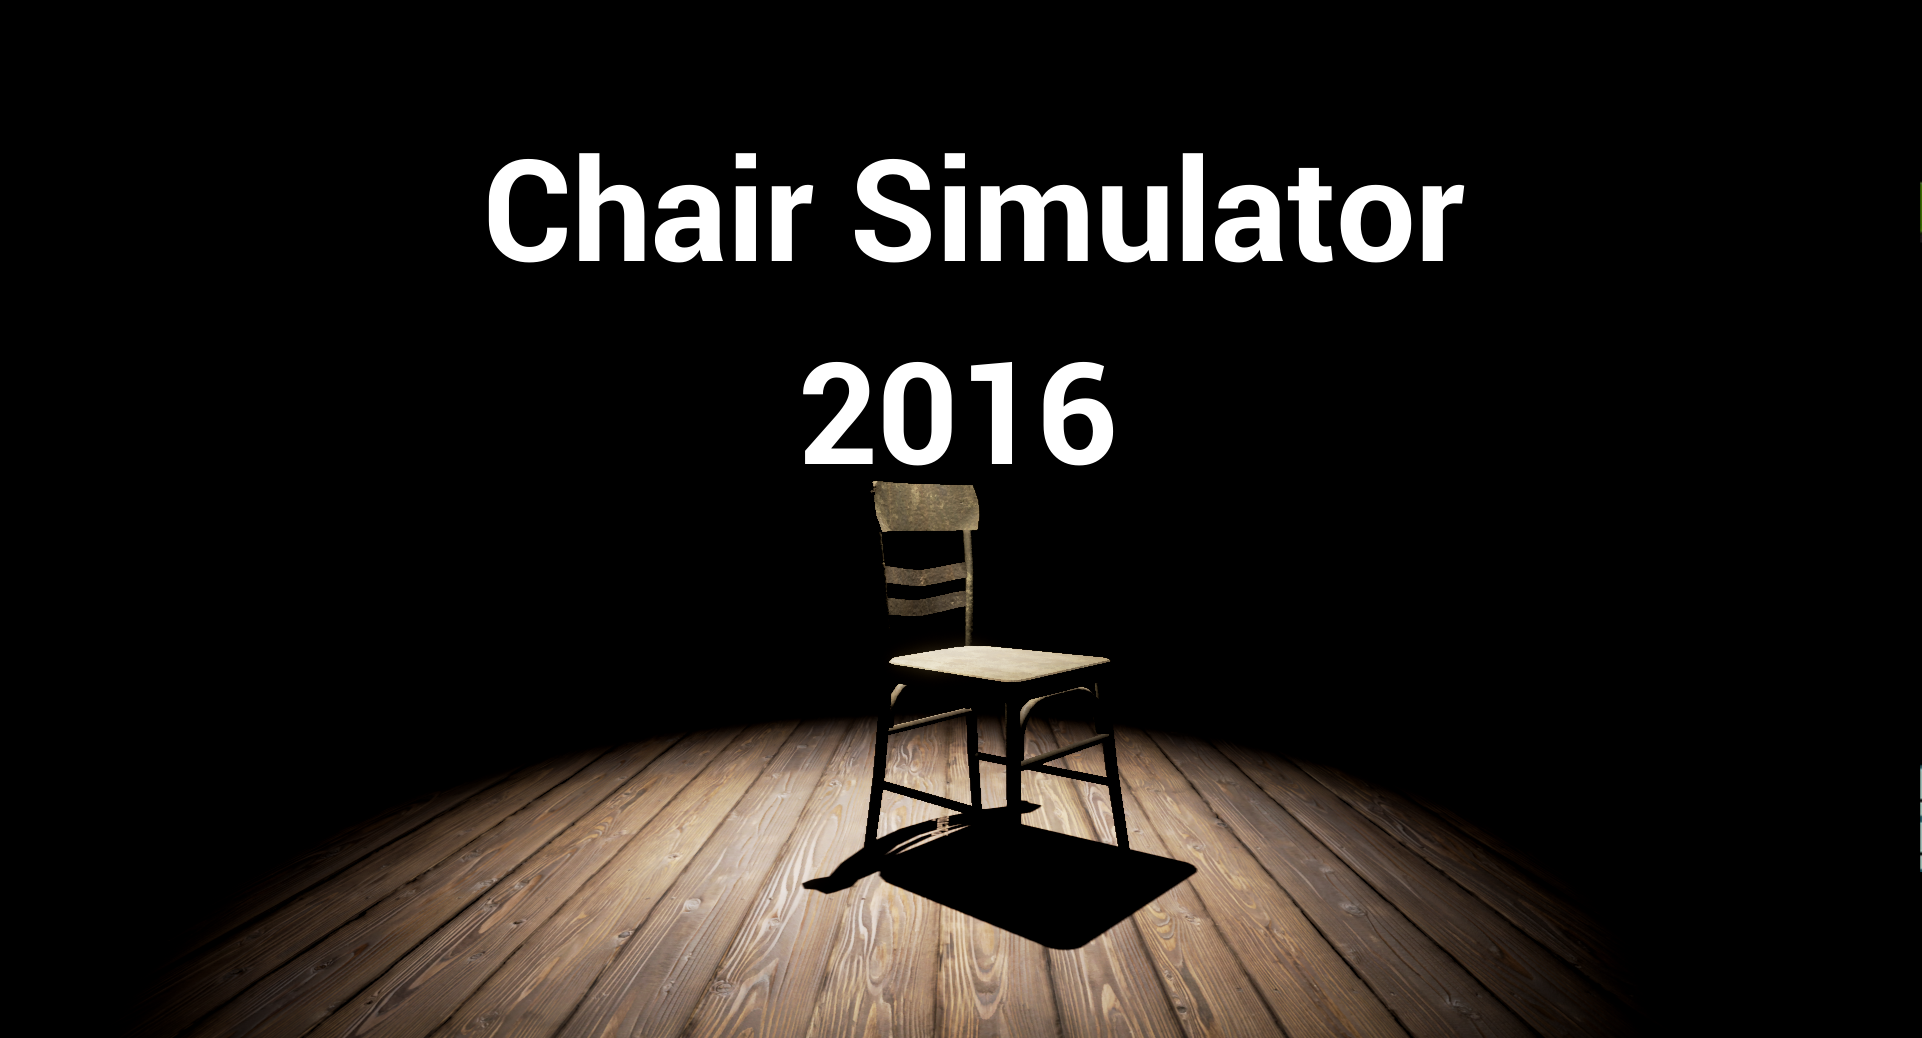 Chair Simulator 2016